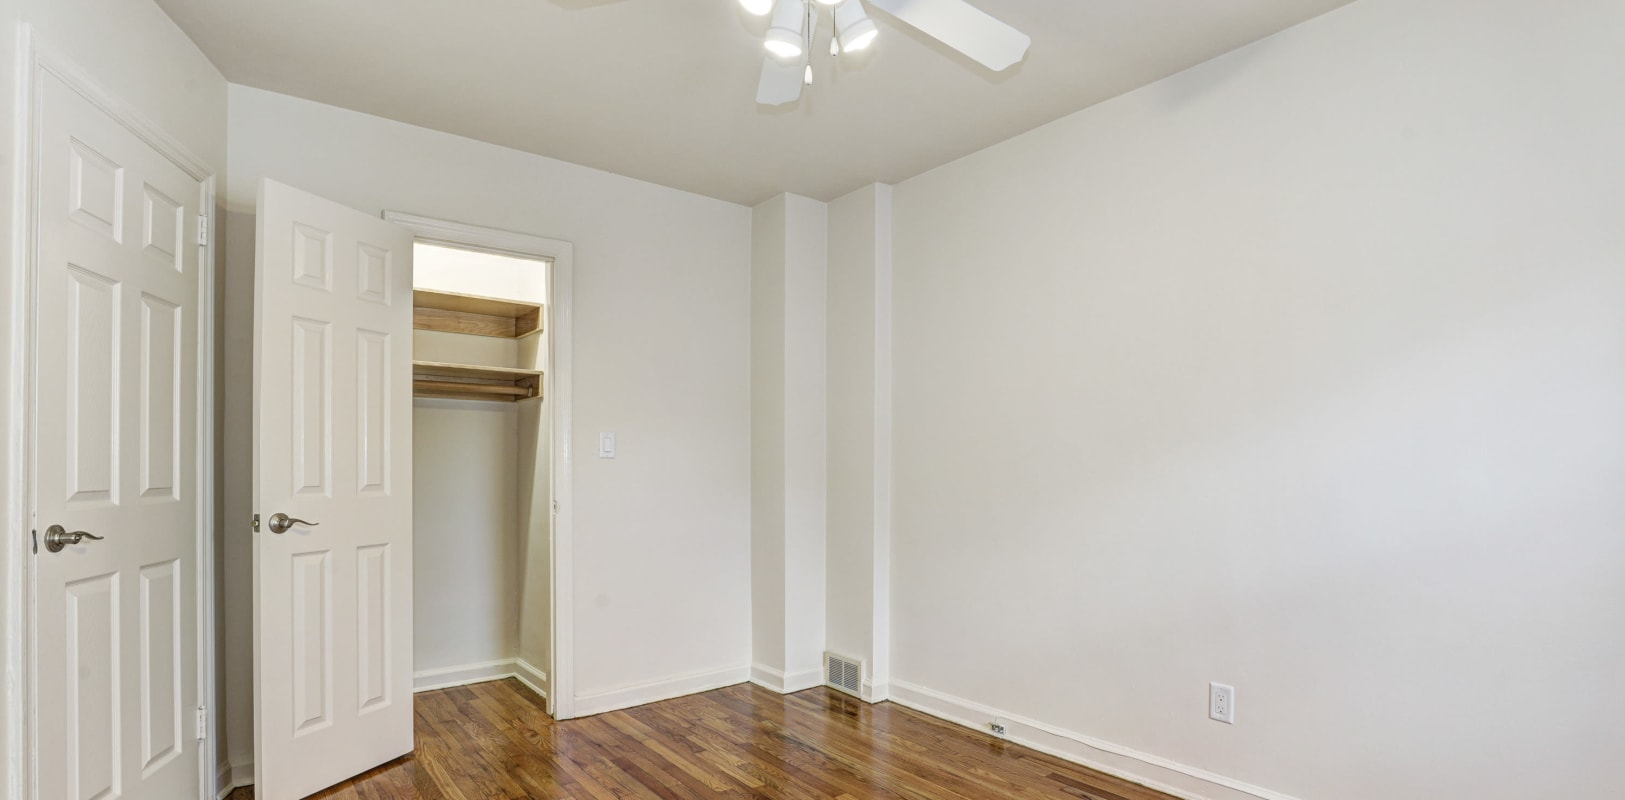 Spacious bedroom with ceiling fan at General Wayne Townhomes and Ridgedale Gardens in Madison, New Jersey